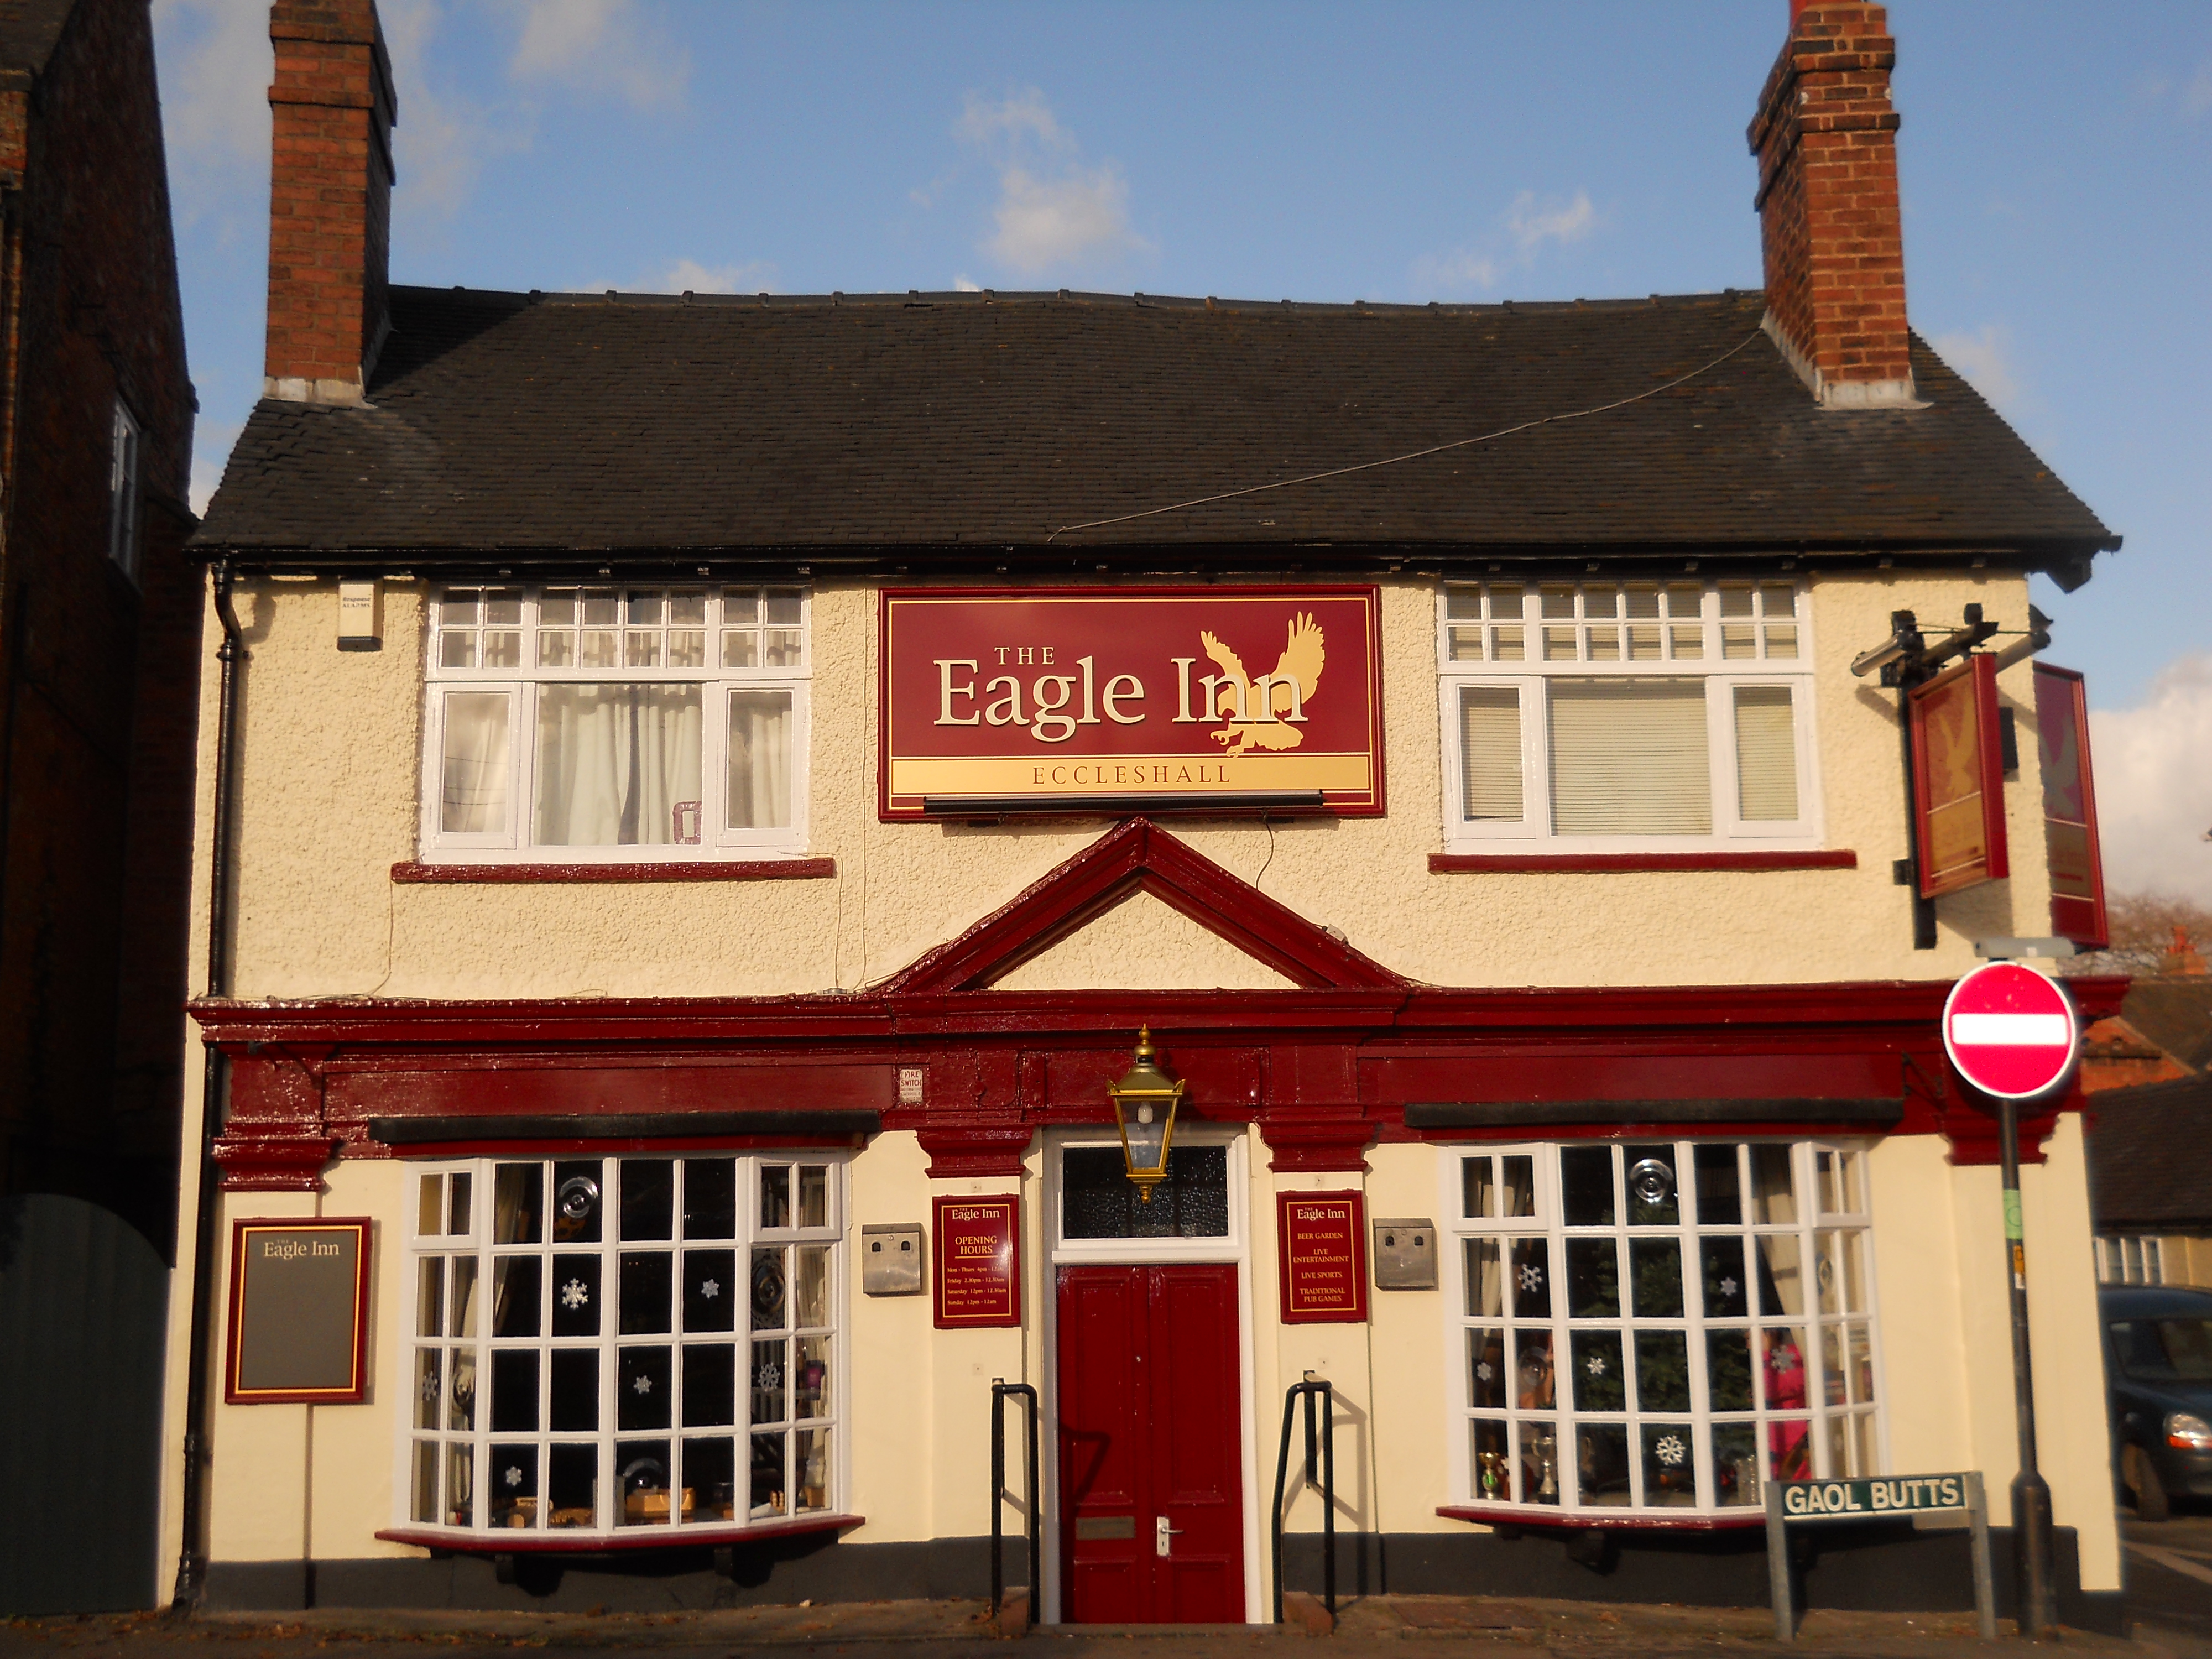 The Eagles Inn